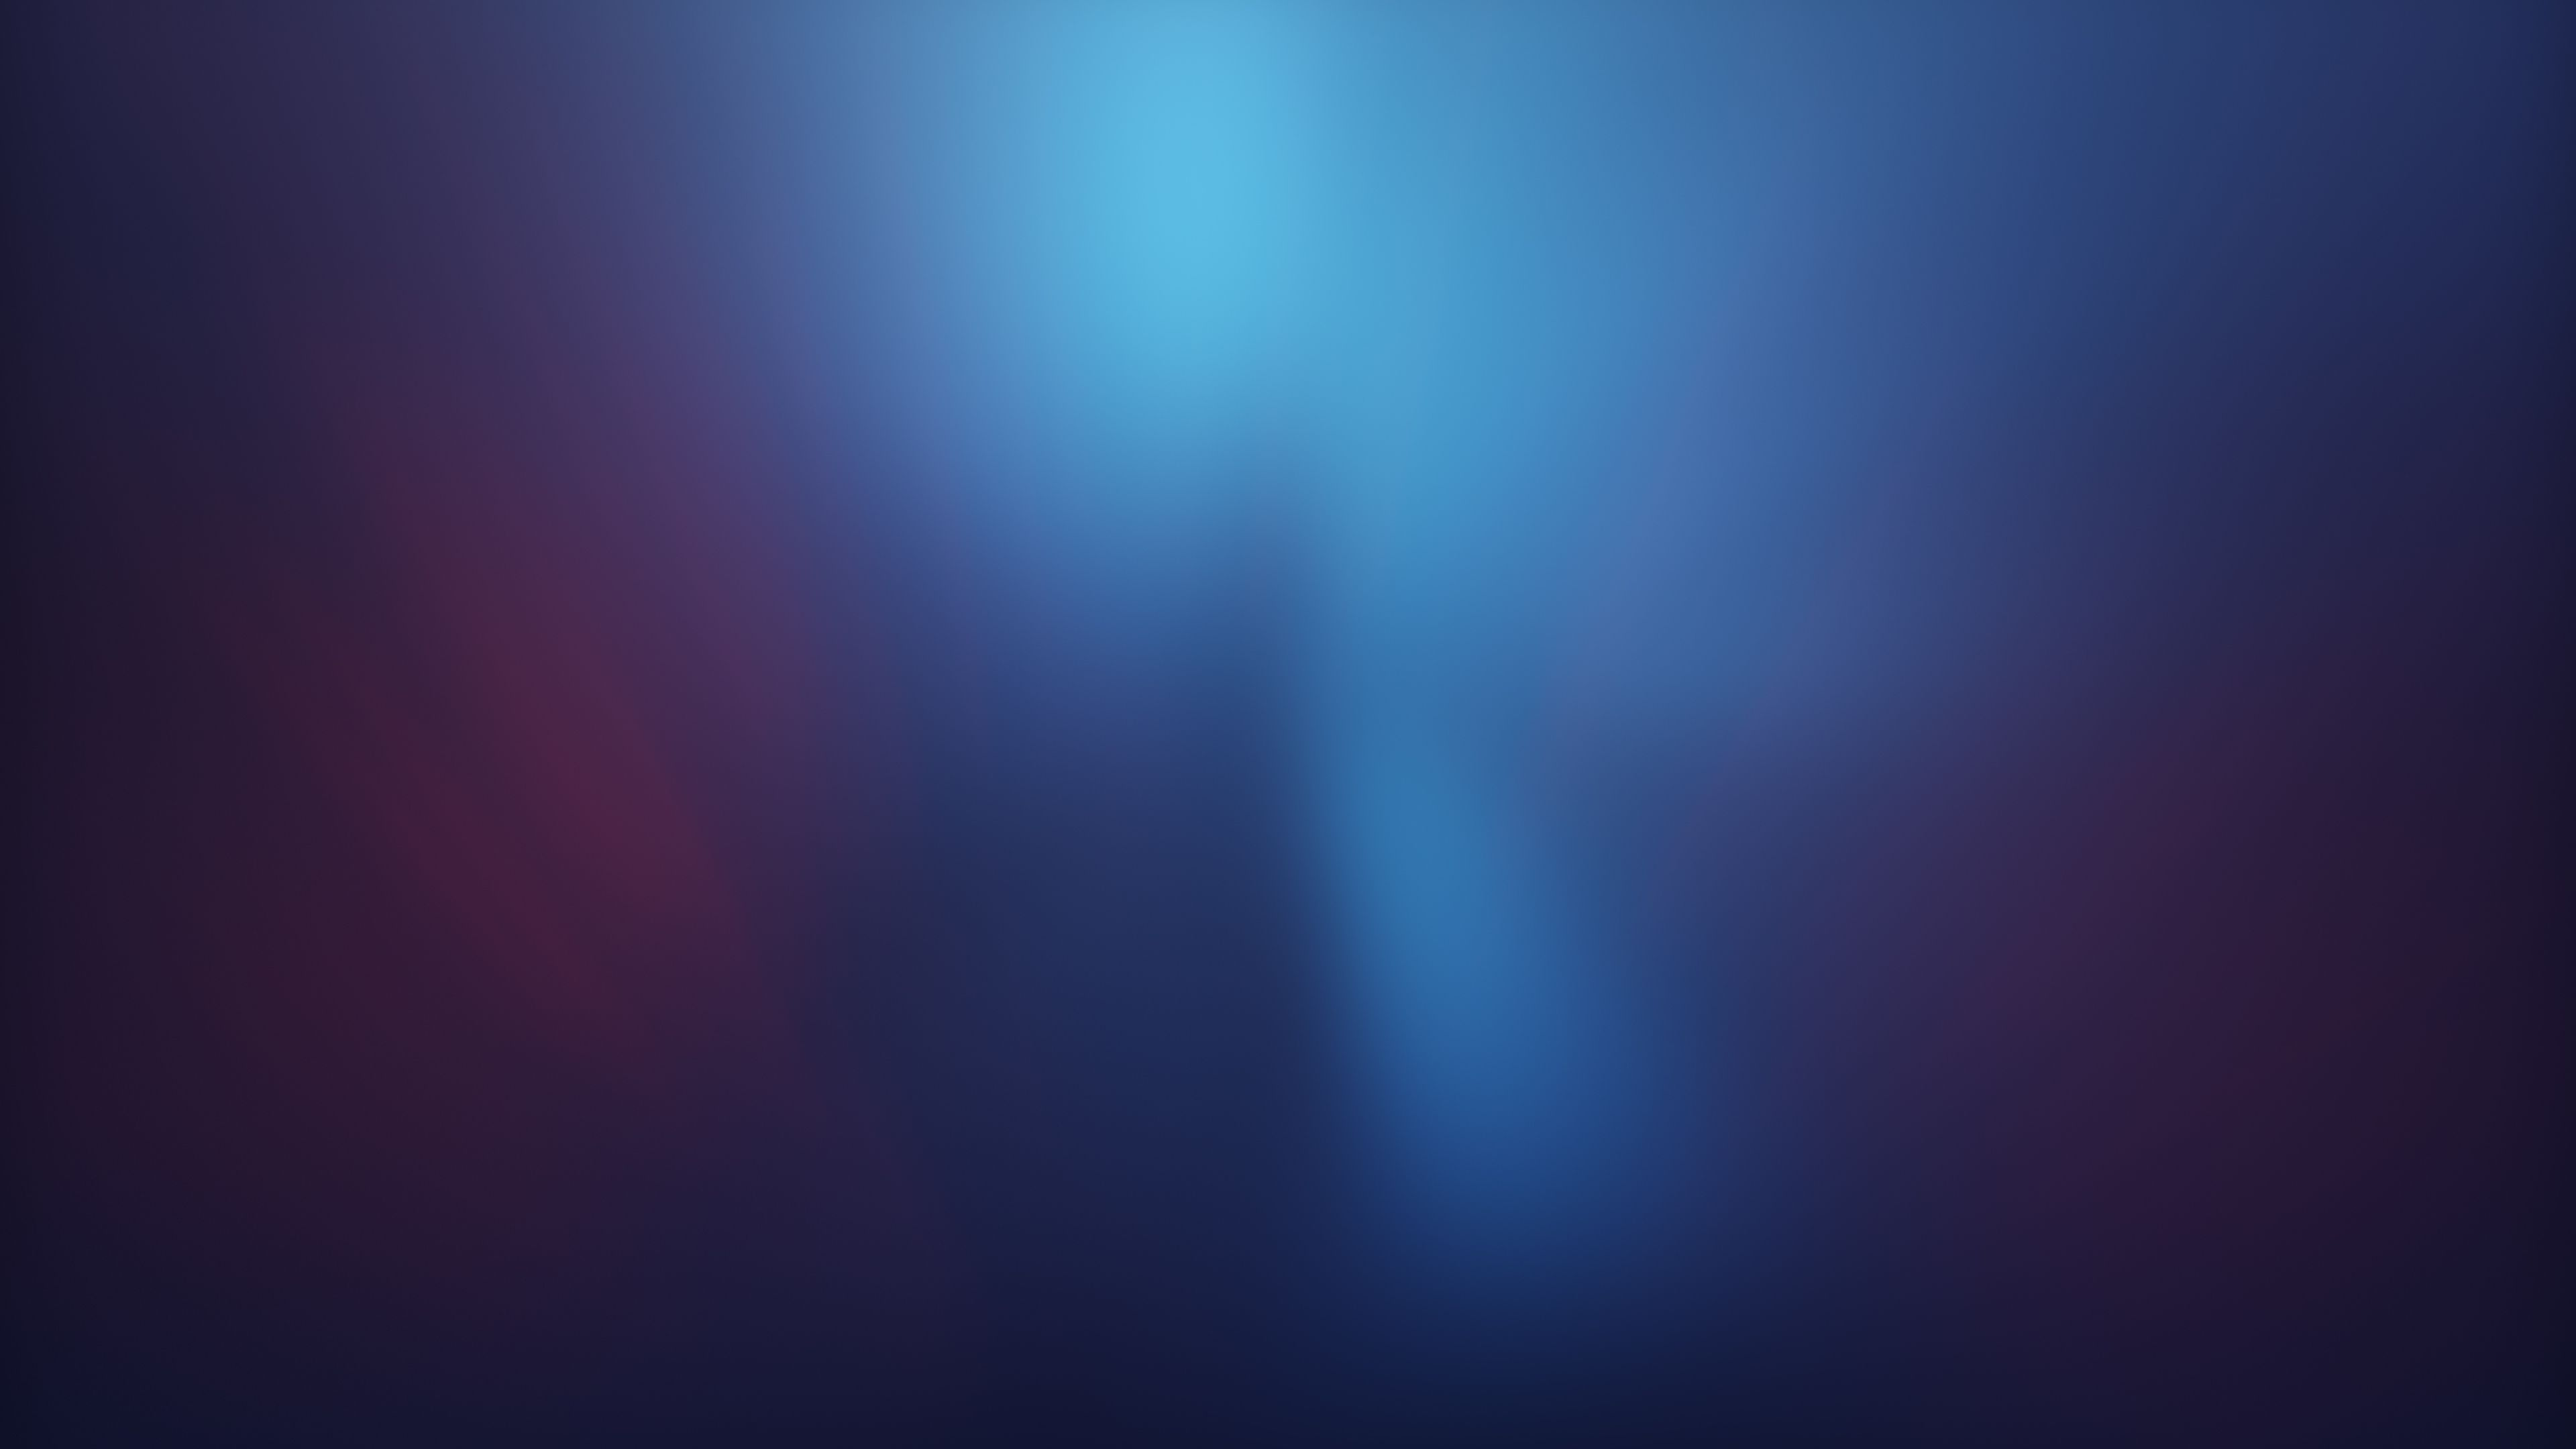 Abstract Minimal Blur 4k Minimalist Wallpapers Minimalism Wallpapers Hd Wallpapers Deviantart Wallpapers In 2020 Mermaid Gifs Minimalist Wallpaper Mermaid Pictures